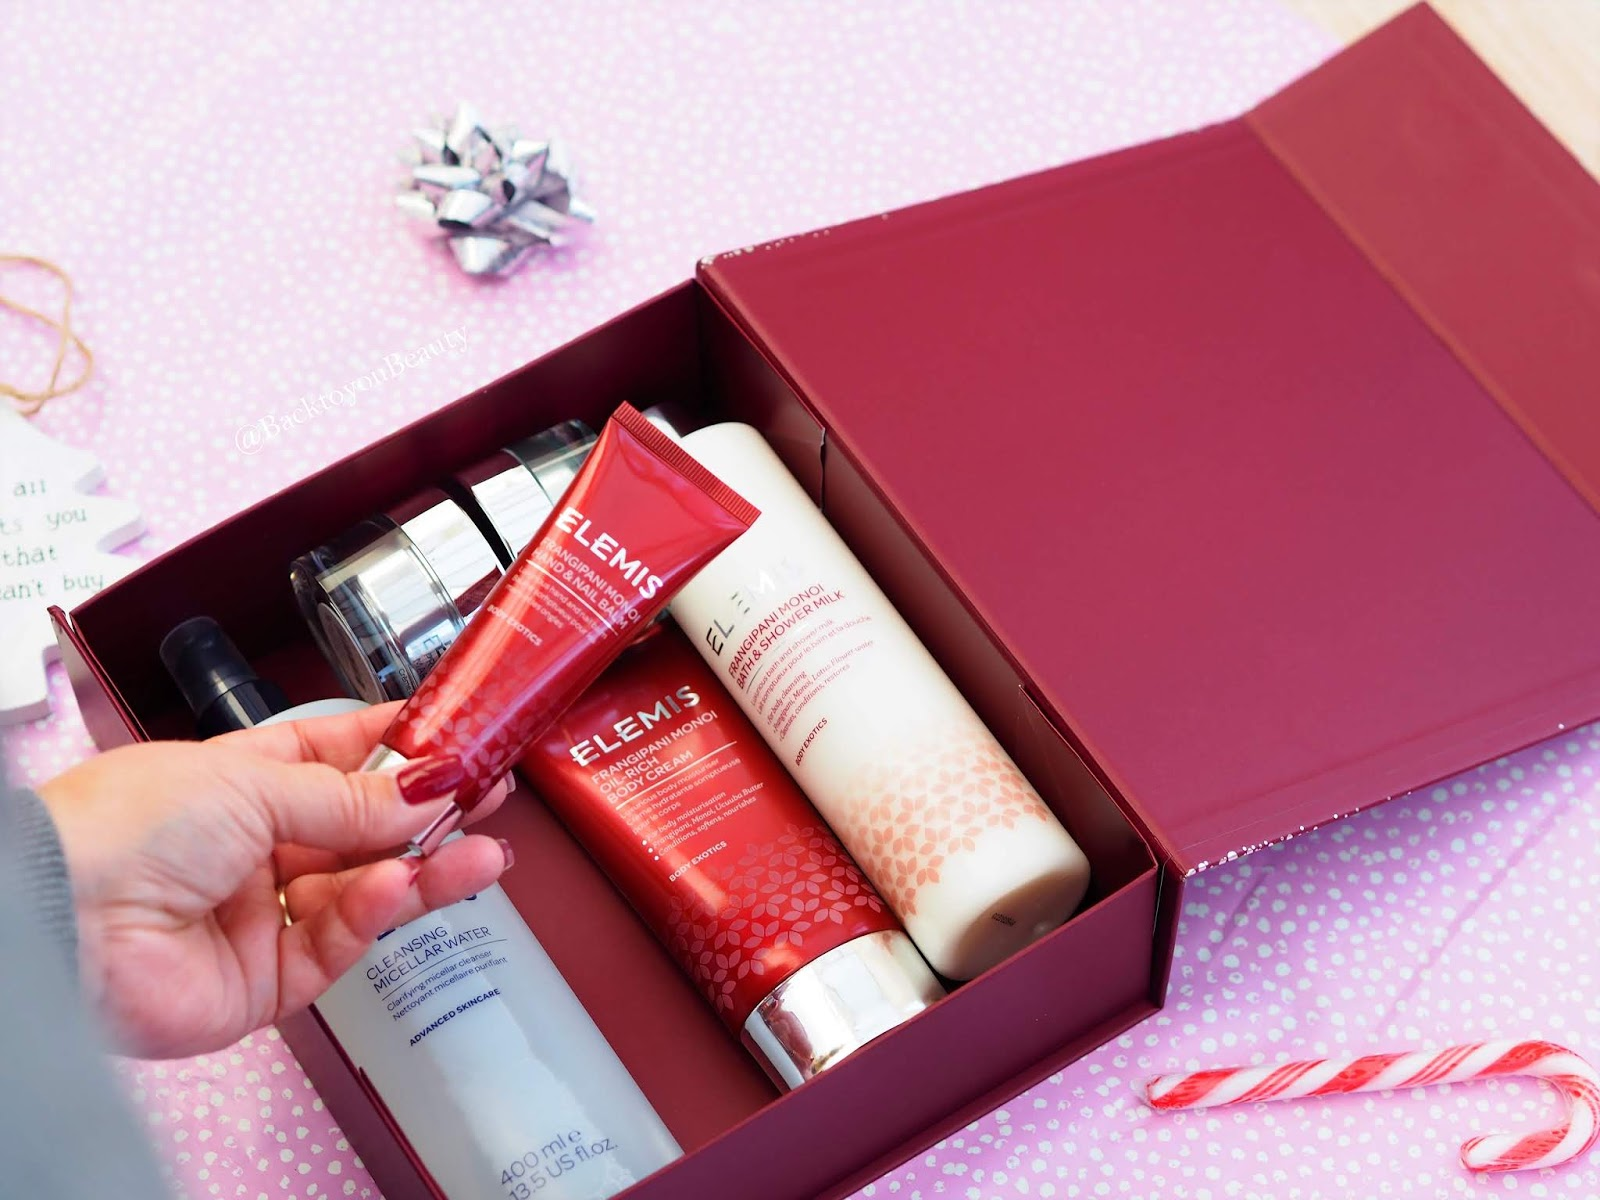 The Red Box : Elemis Christmas TSV Frangipani Monoi